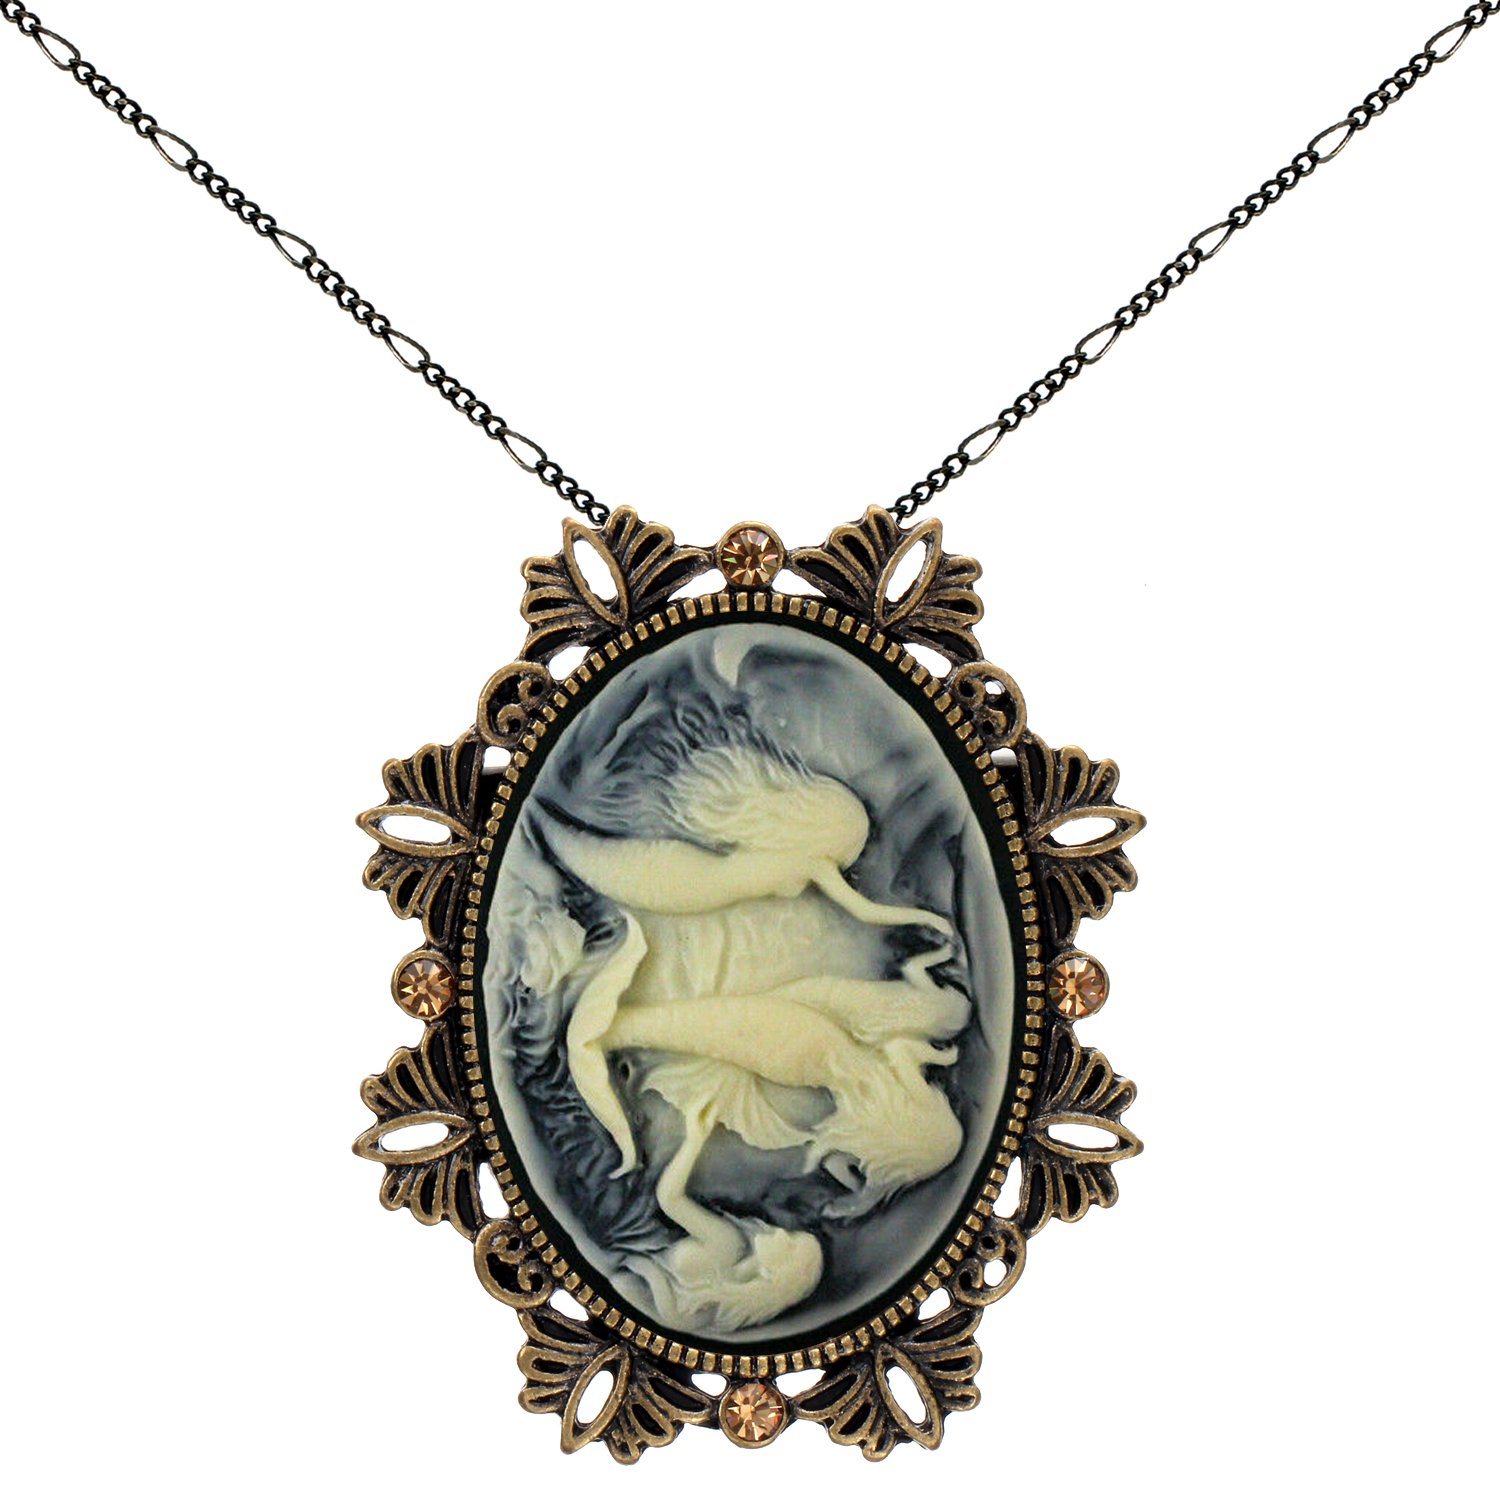 Mermaid Sister Brooch Necklace Two Way Functional Antique Brass Pendant 2pc Chain Pouch for Gift